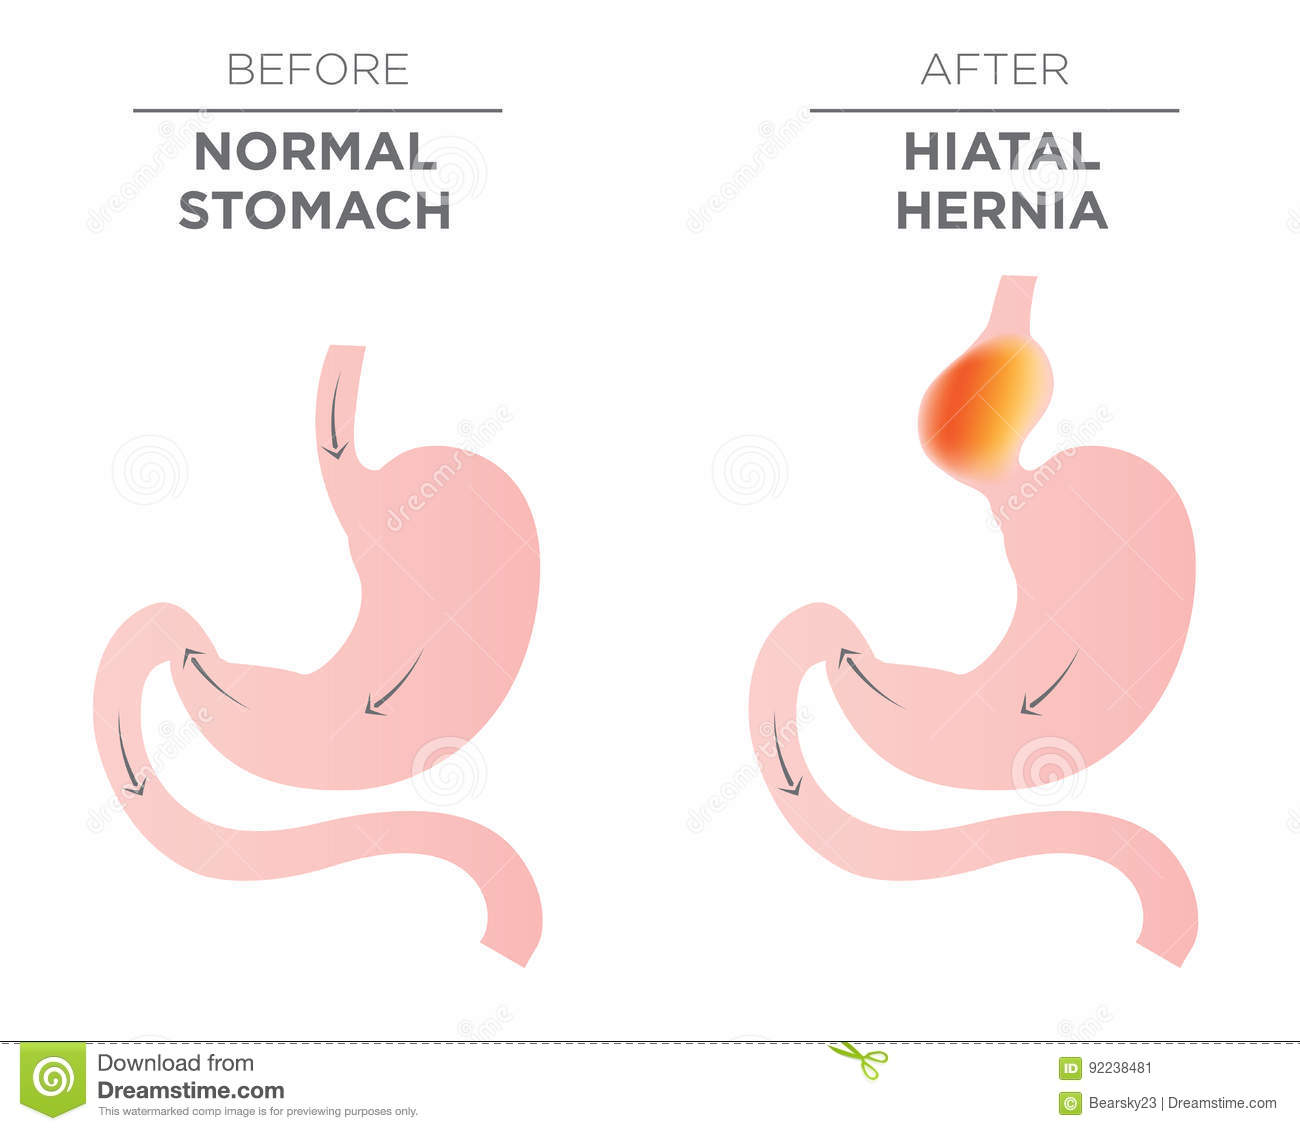 how to fix a hiatal hernia at home